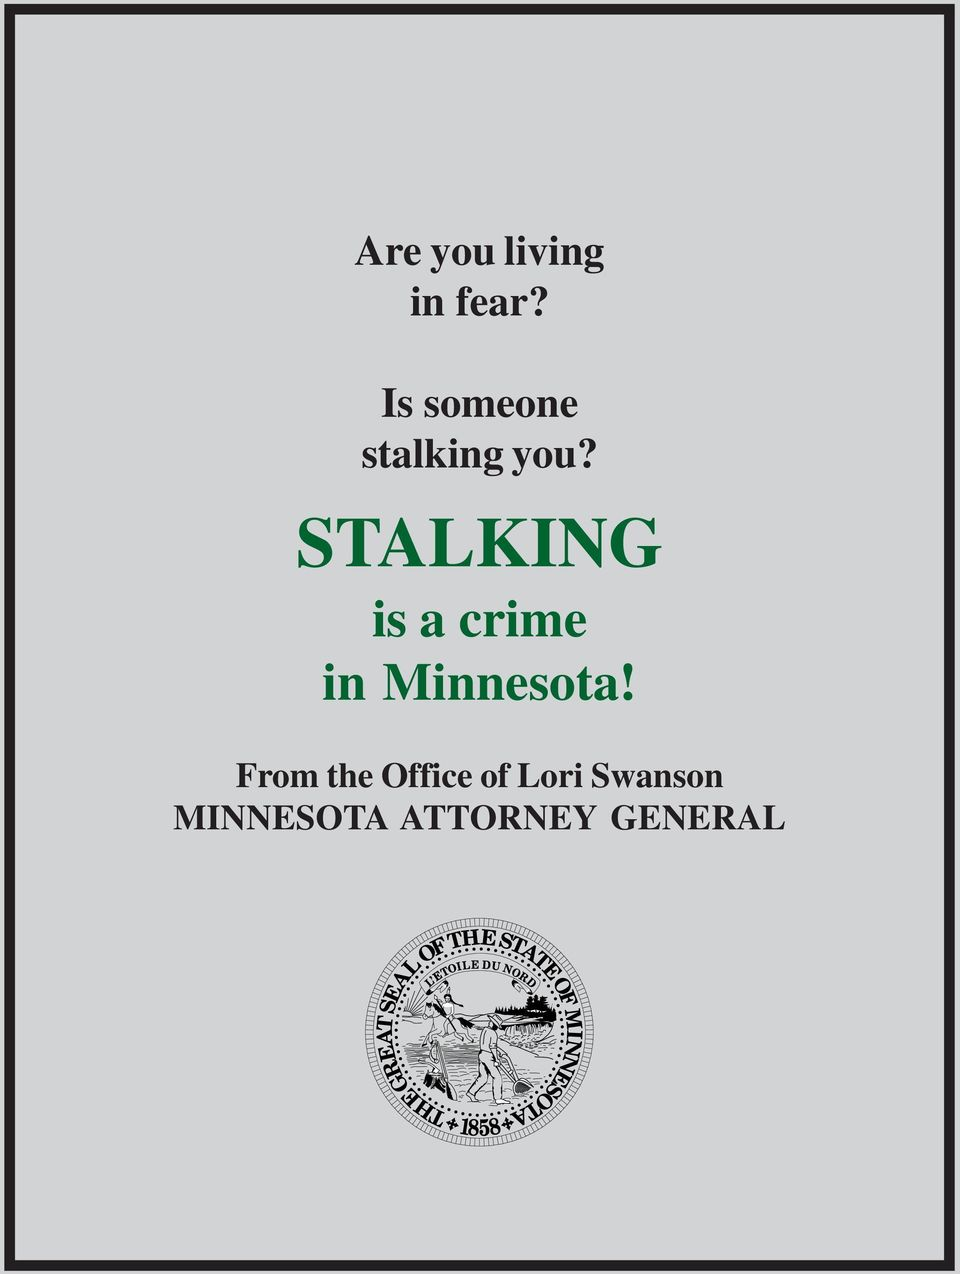 STALKING is a crime in Minnesota!